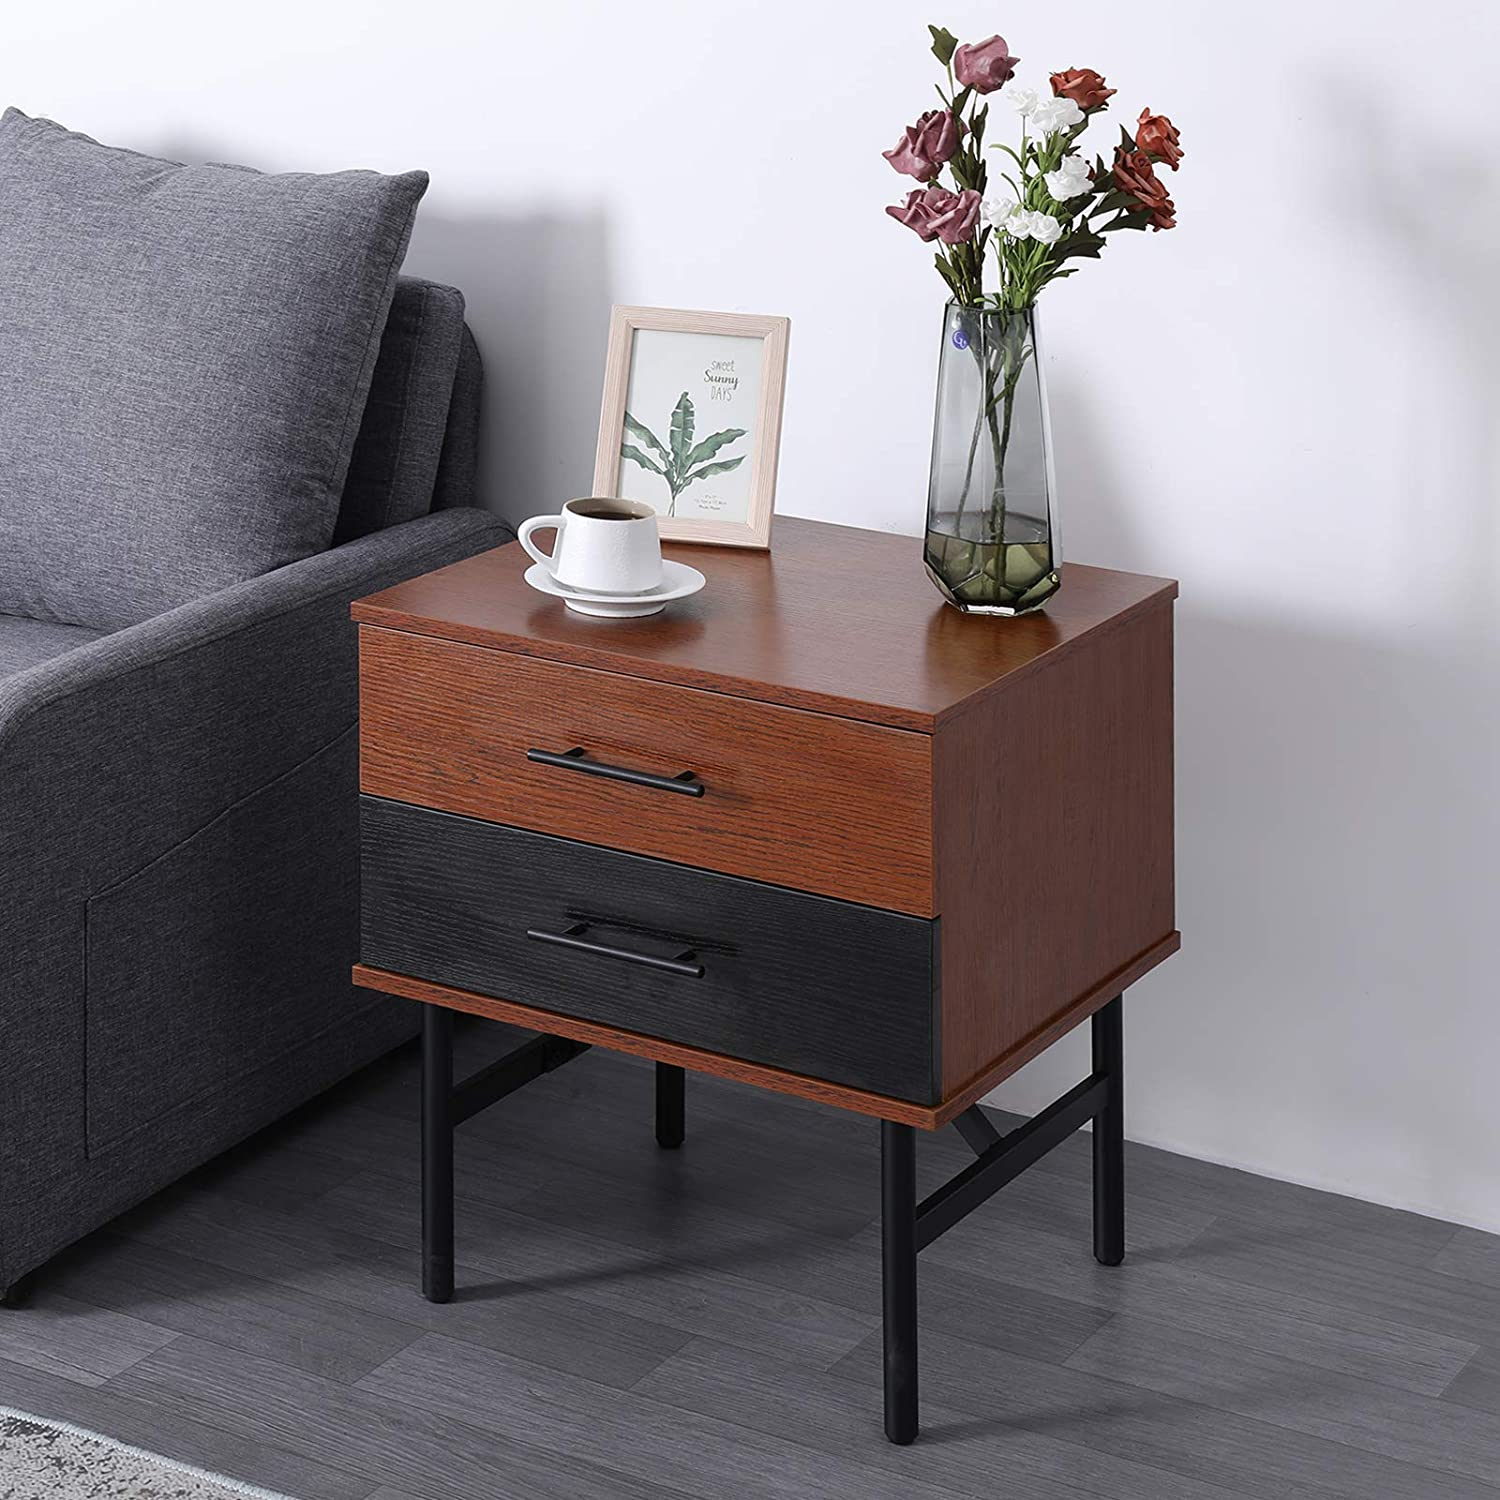 SCOZER End Table with 2 Drawer Storage, Side Table w Metal Leg, Mid-Century Nightstand Wood Look Accent Furniture Fine Decor, for Living Room Bedroom Narrow Small Spaces, Vintage Rustic Brown